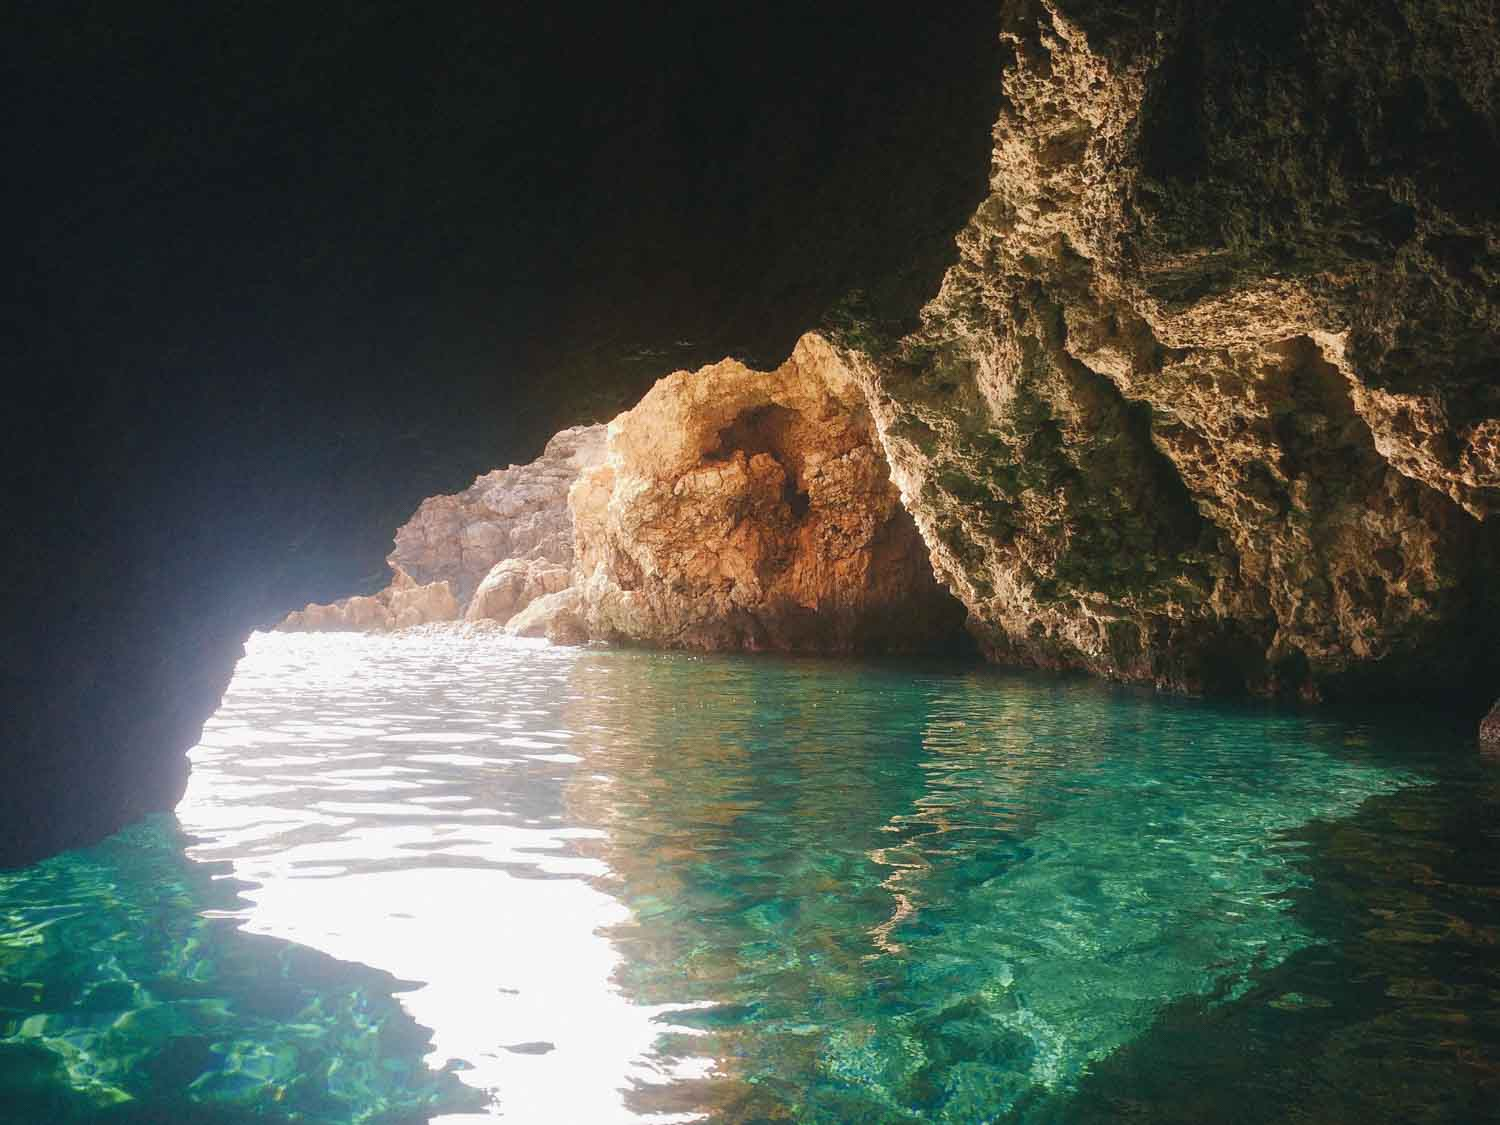 Cave in Ibiza with turquoise, clear water